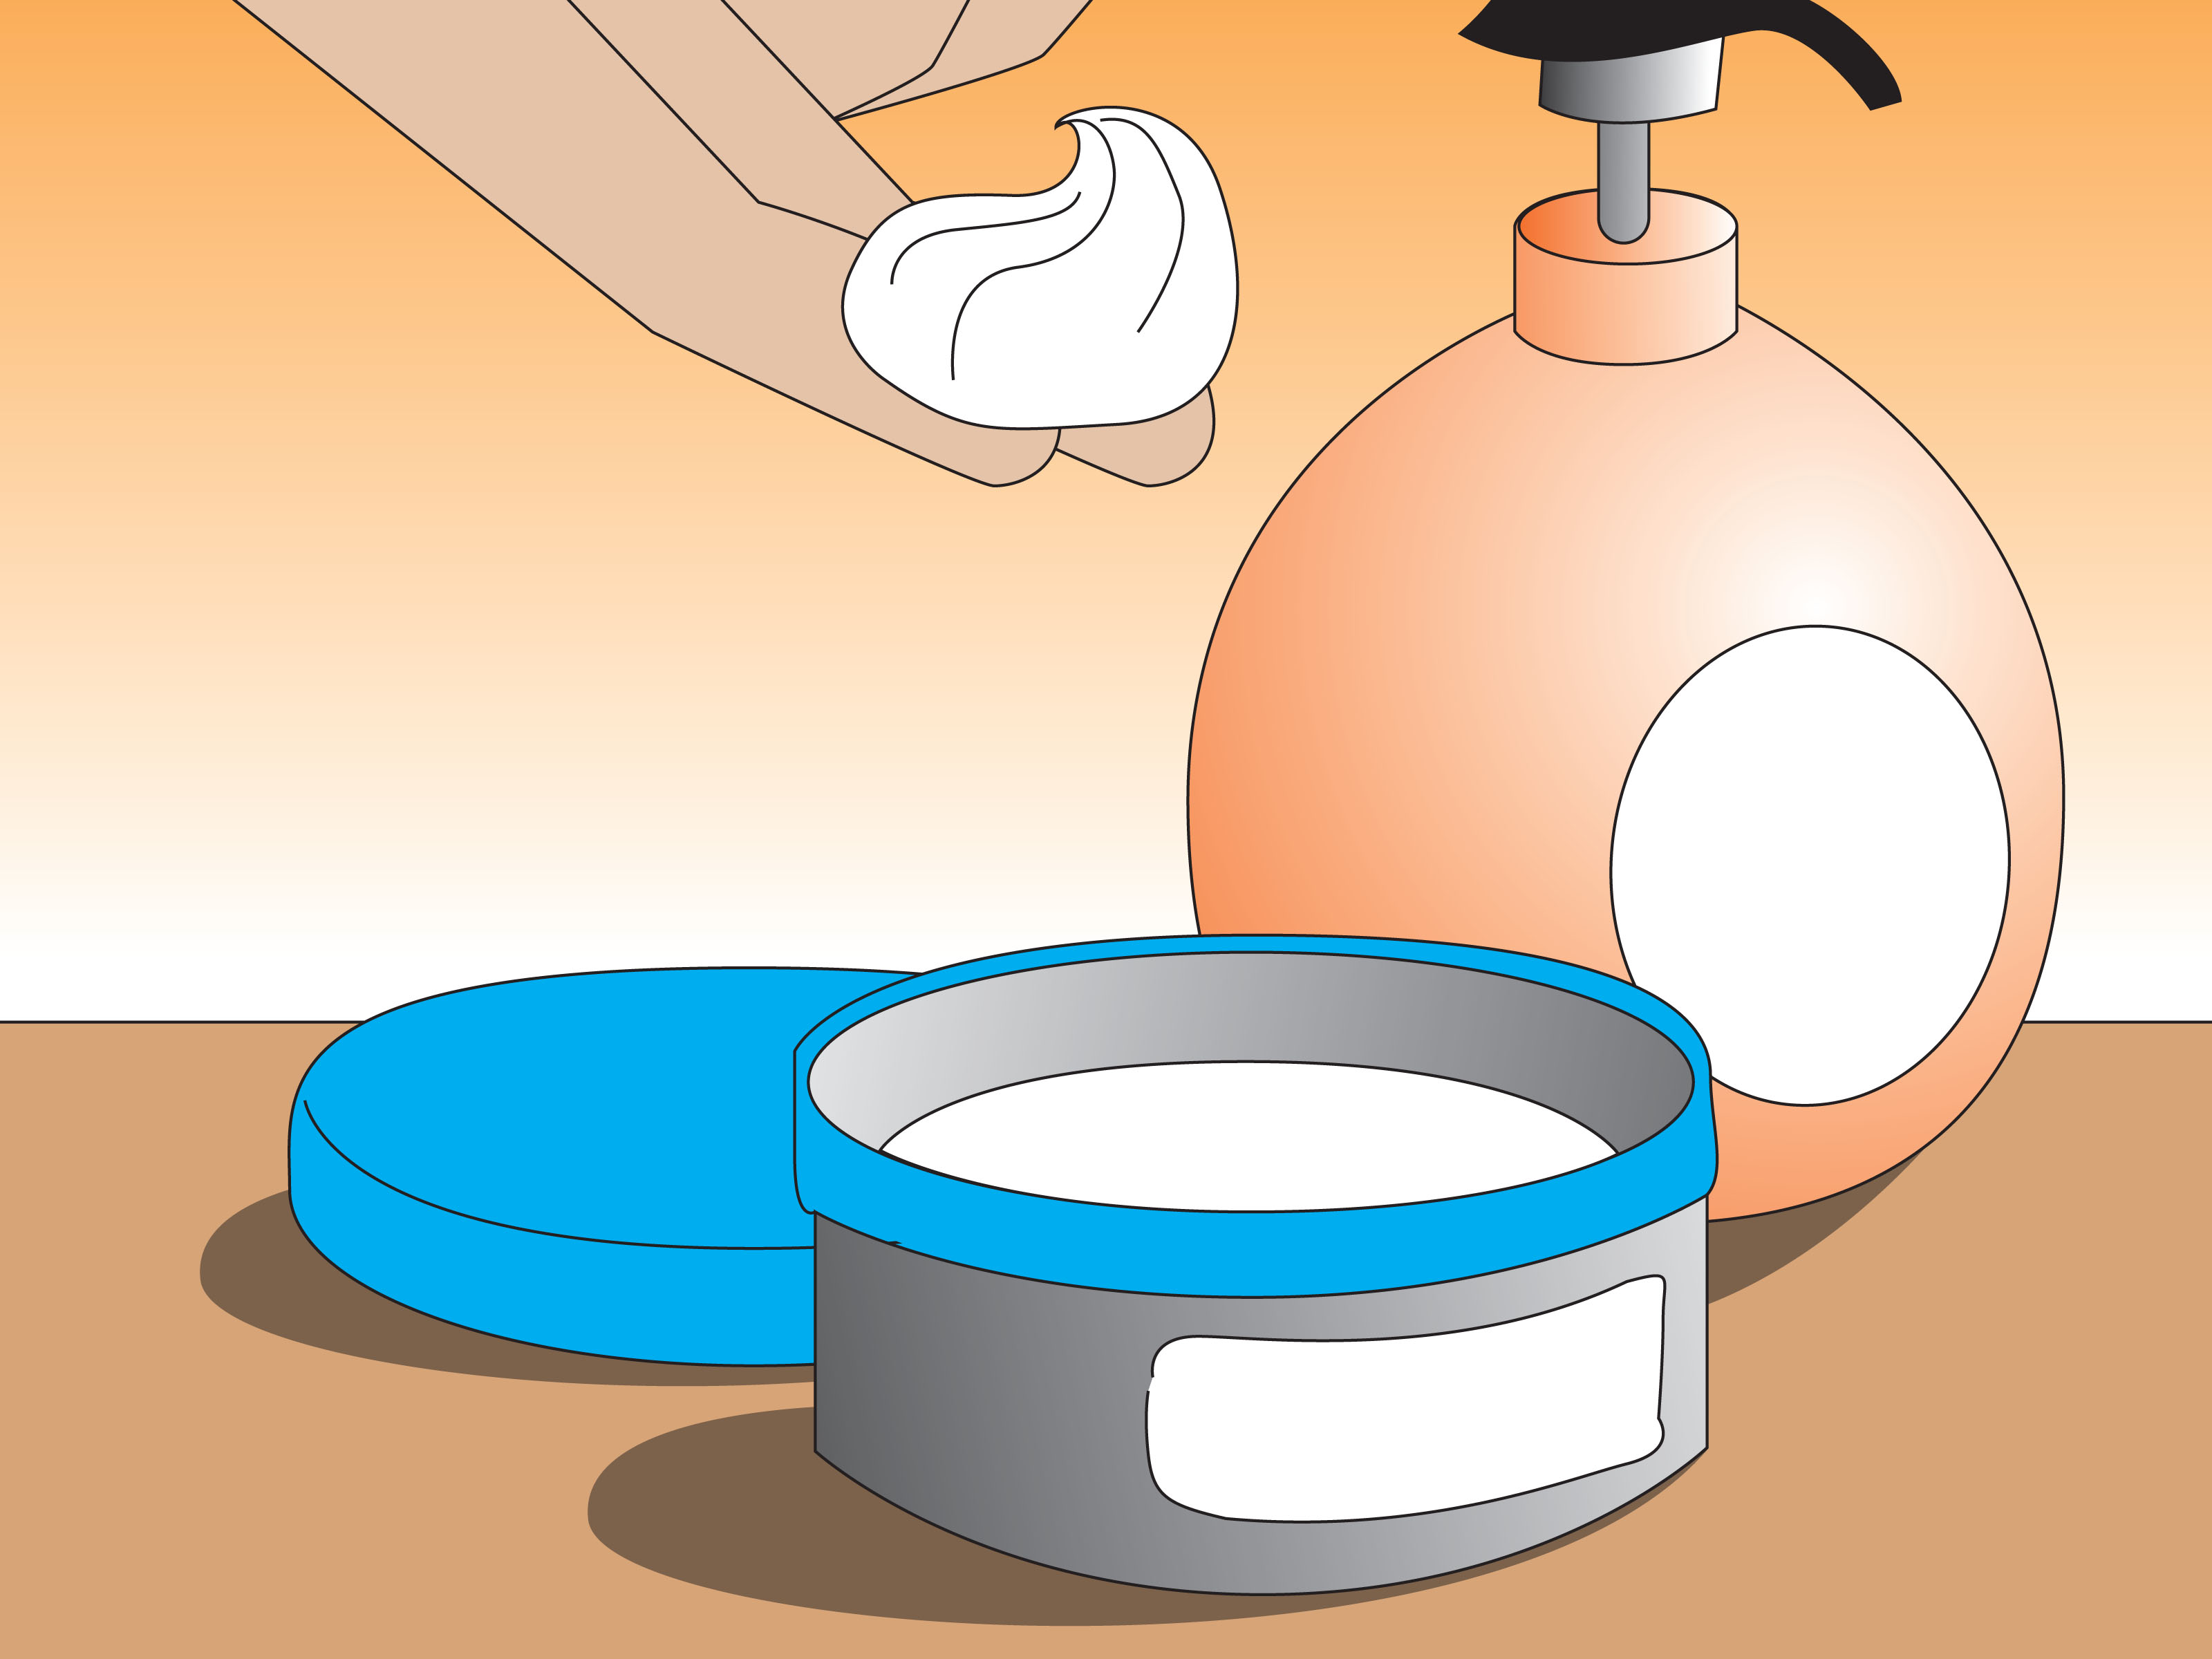 Diapers clipart cream. How to treat diaper